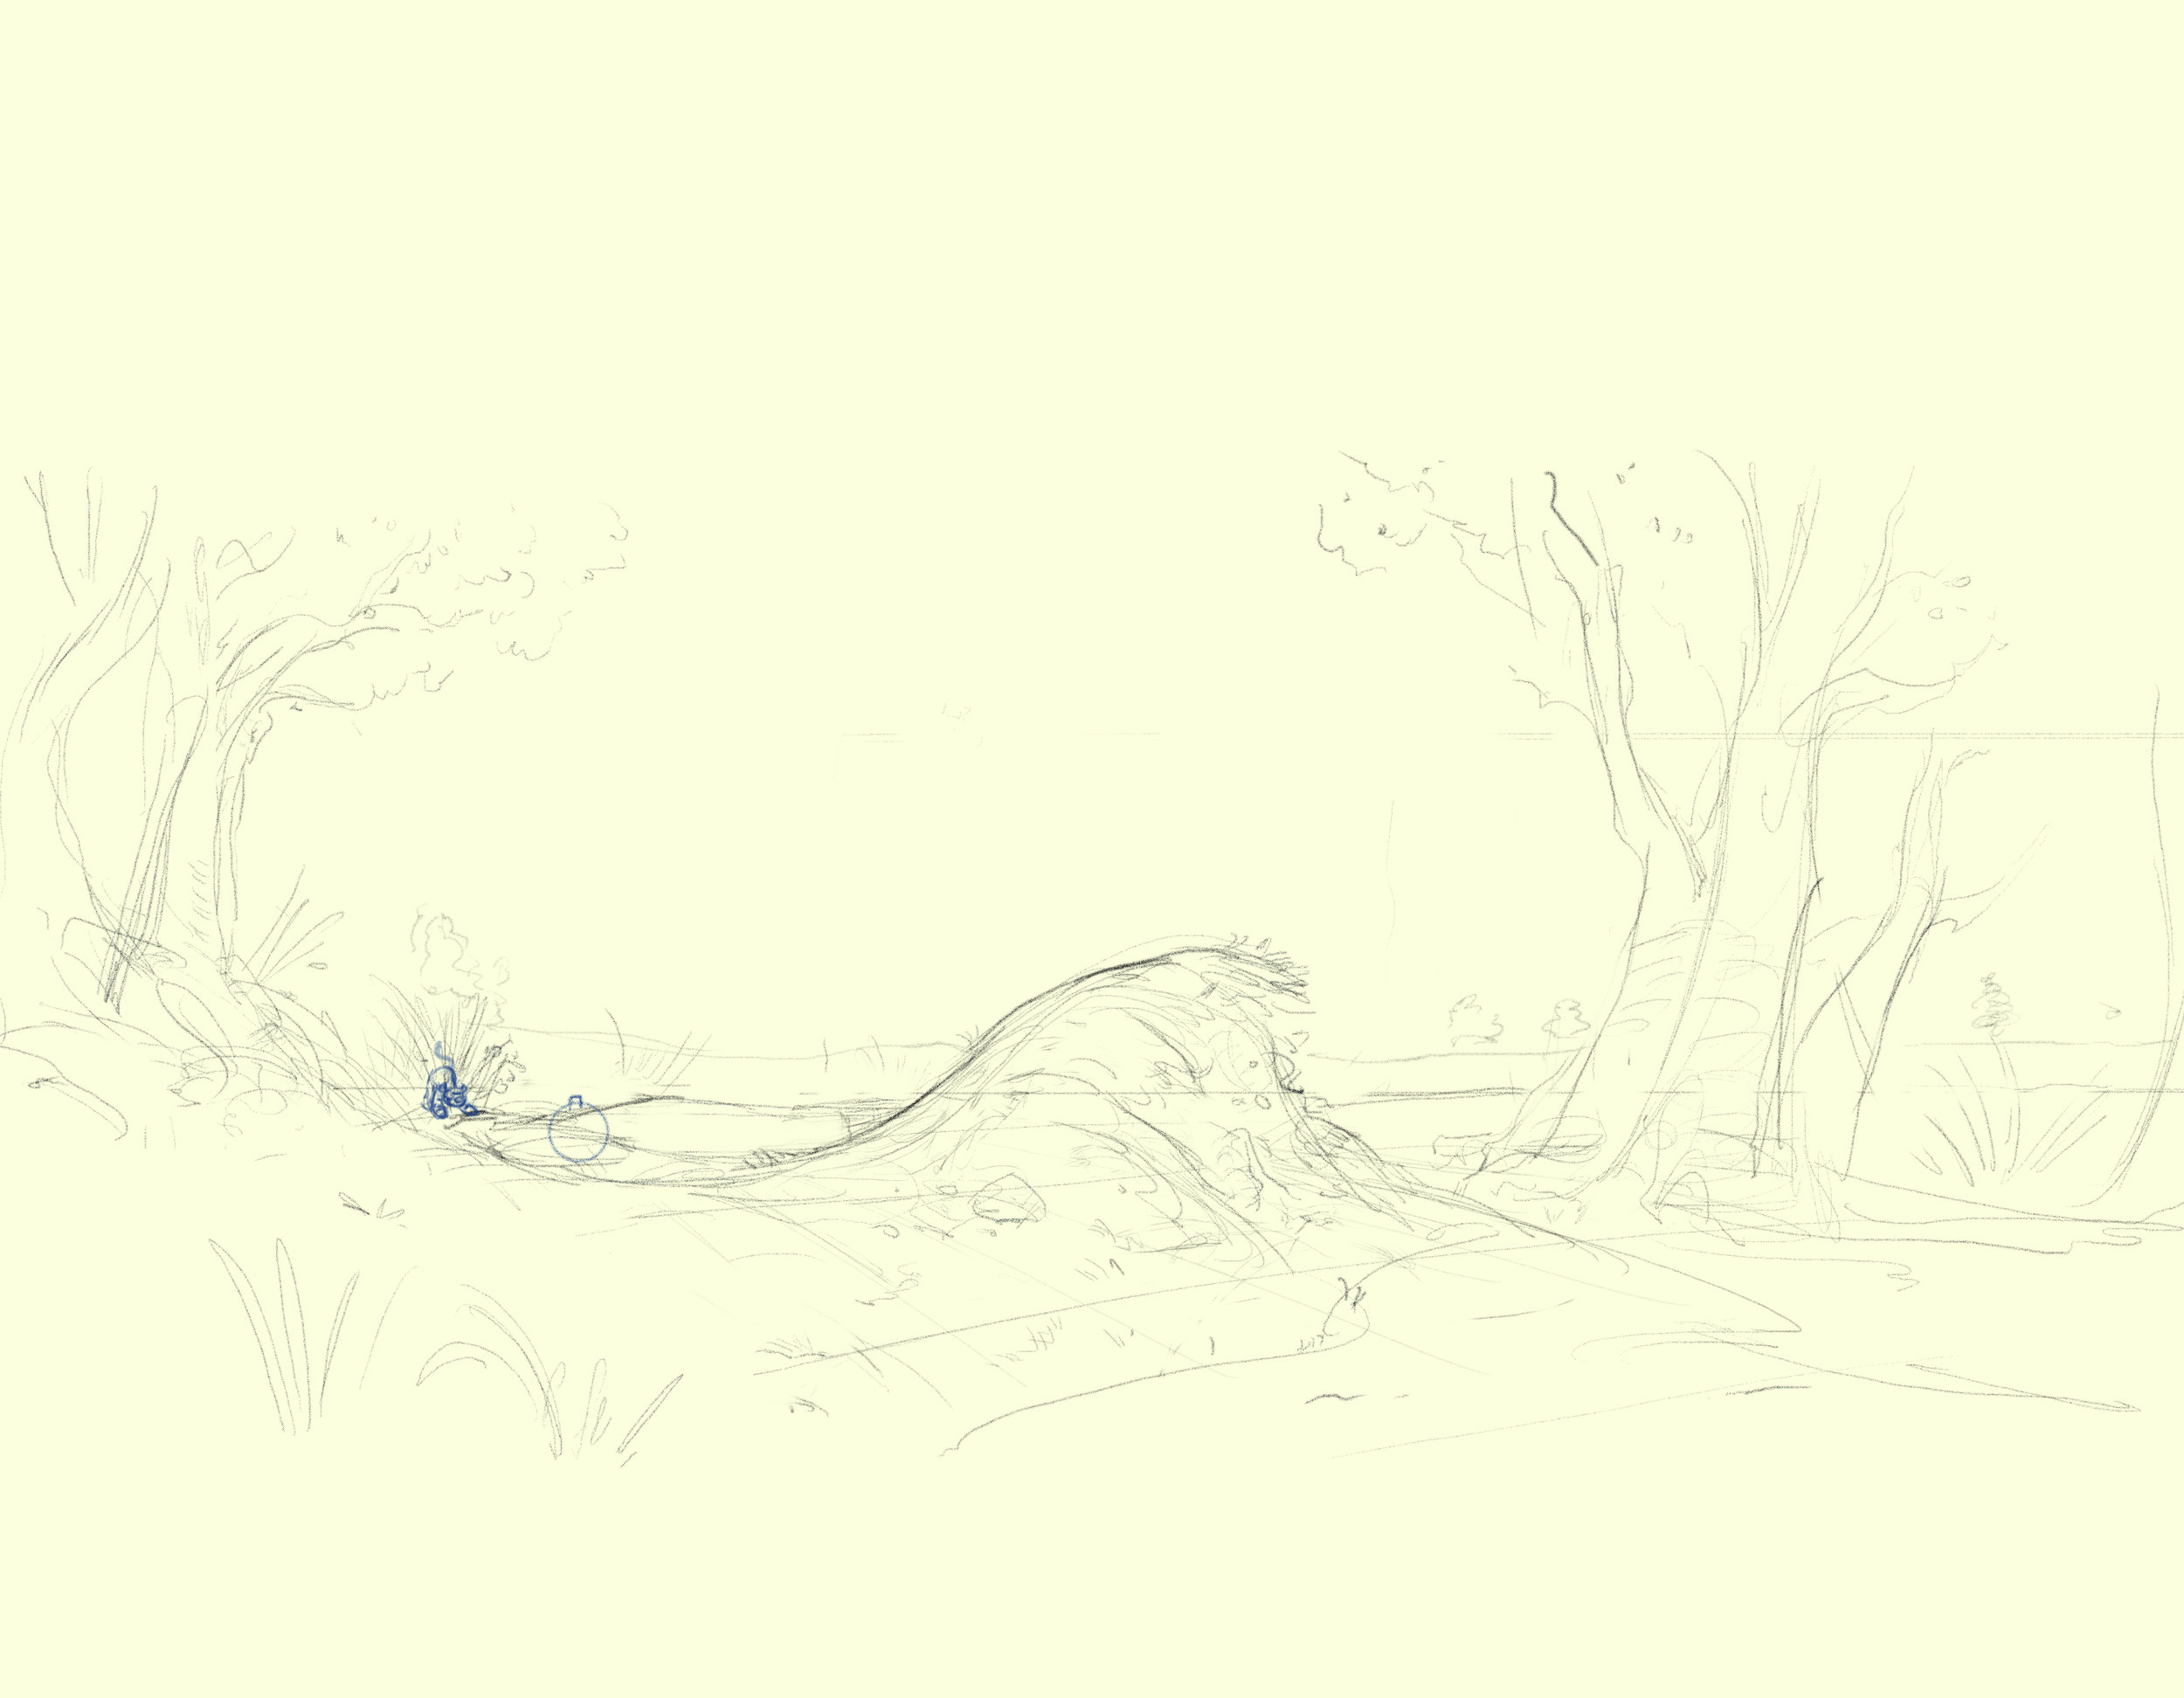 carlopuche_BACKGROUND sketch.jpg